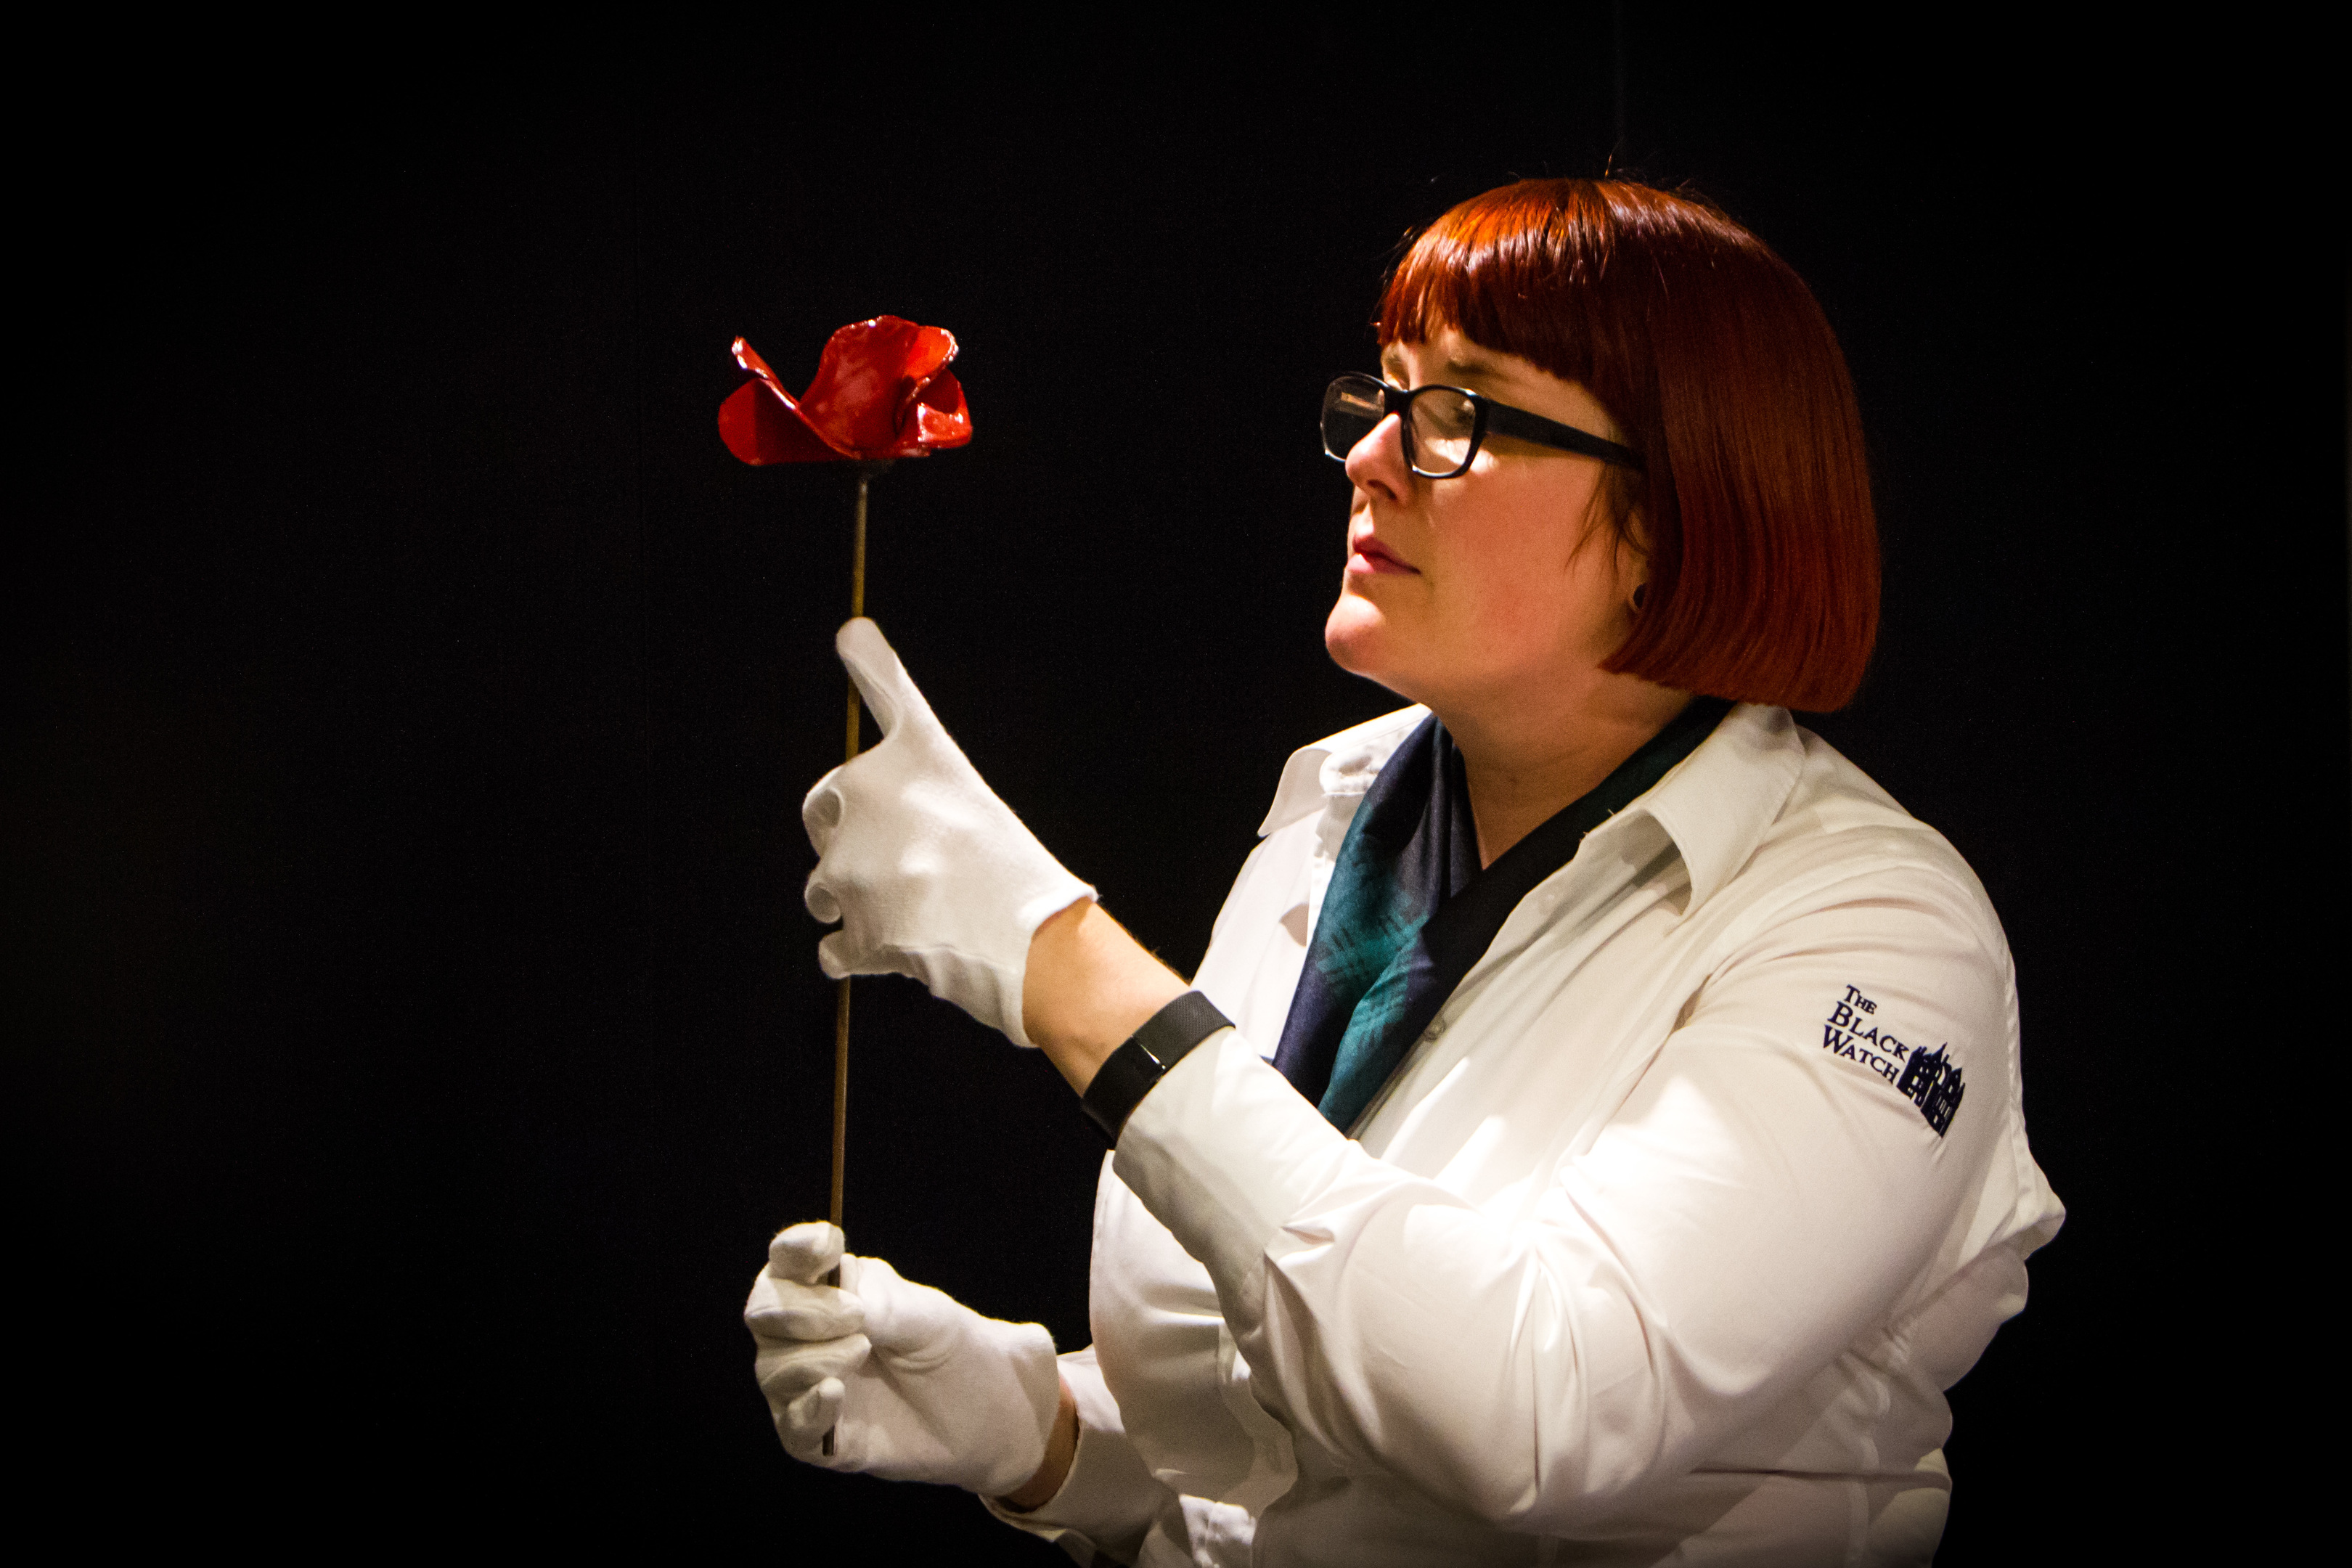 Black Watch museum manager Emma Halford-Forbes, with one of the ceramic poppies. This particular poppy has been gifted to the museum and will go on permanent display at the castle.